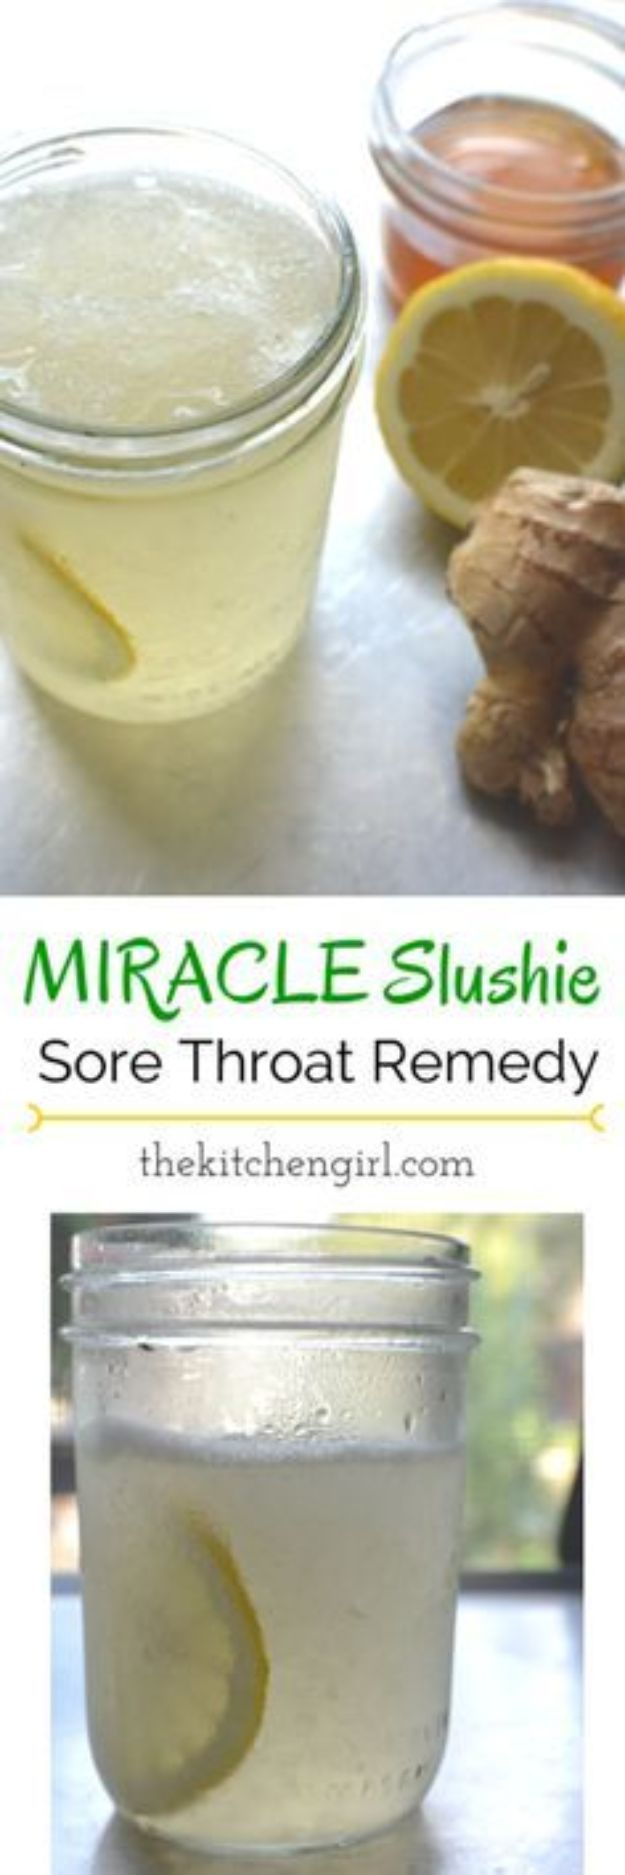 DIY Home Remedies - Miracle Slushie Sore Throat Relief - Homemade Recipes and Ideas for Help Relieve Symptoms of Cold and Flu, Upset Stomach, Rash, Cough, Sore Throat, Headache and Illness - Skincare Products, Balms, Lotions and Teas